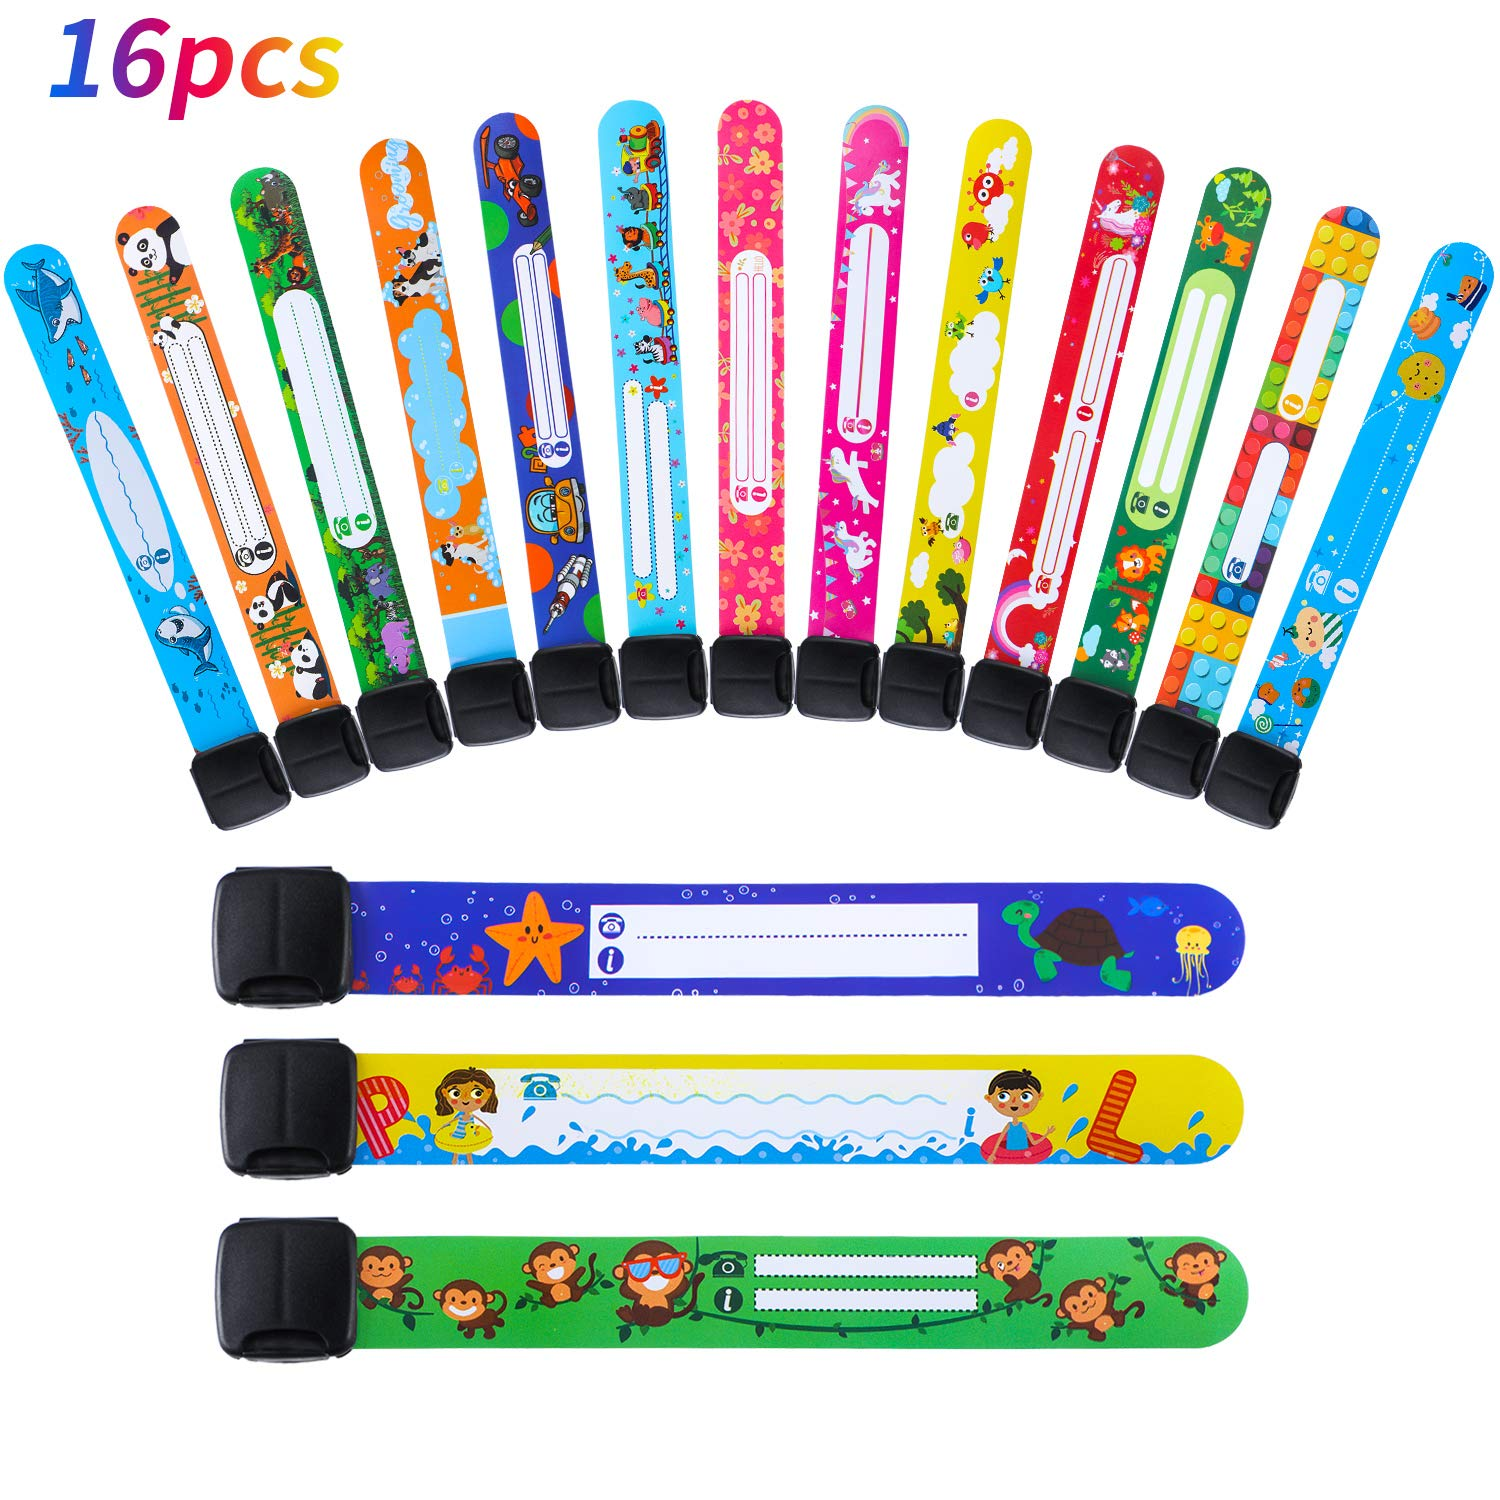 Children Safety ID Wristband Waterproof ID Bands Adjustable Information Wristbands for Boys and Girls Outdoor Supplies 16 Styles, 16 Pieces